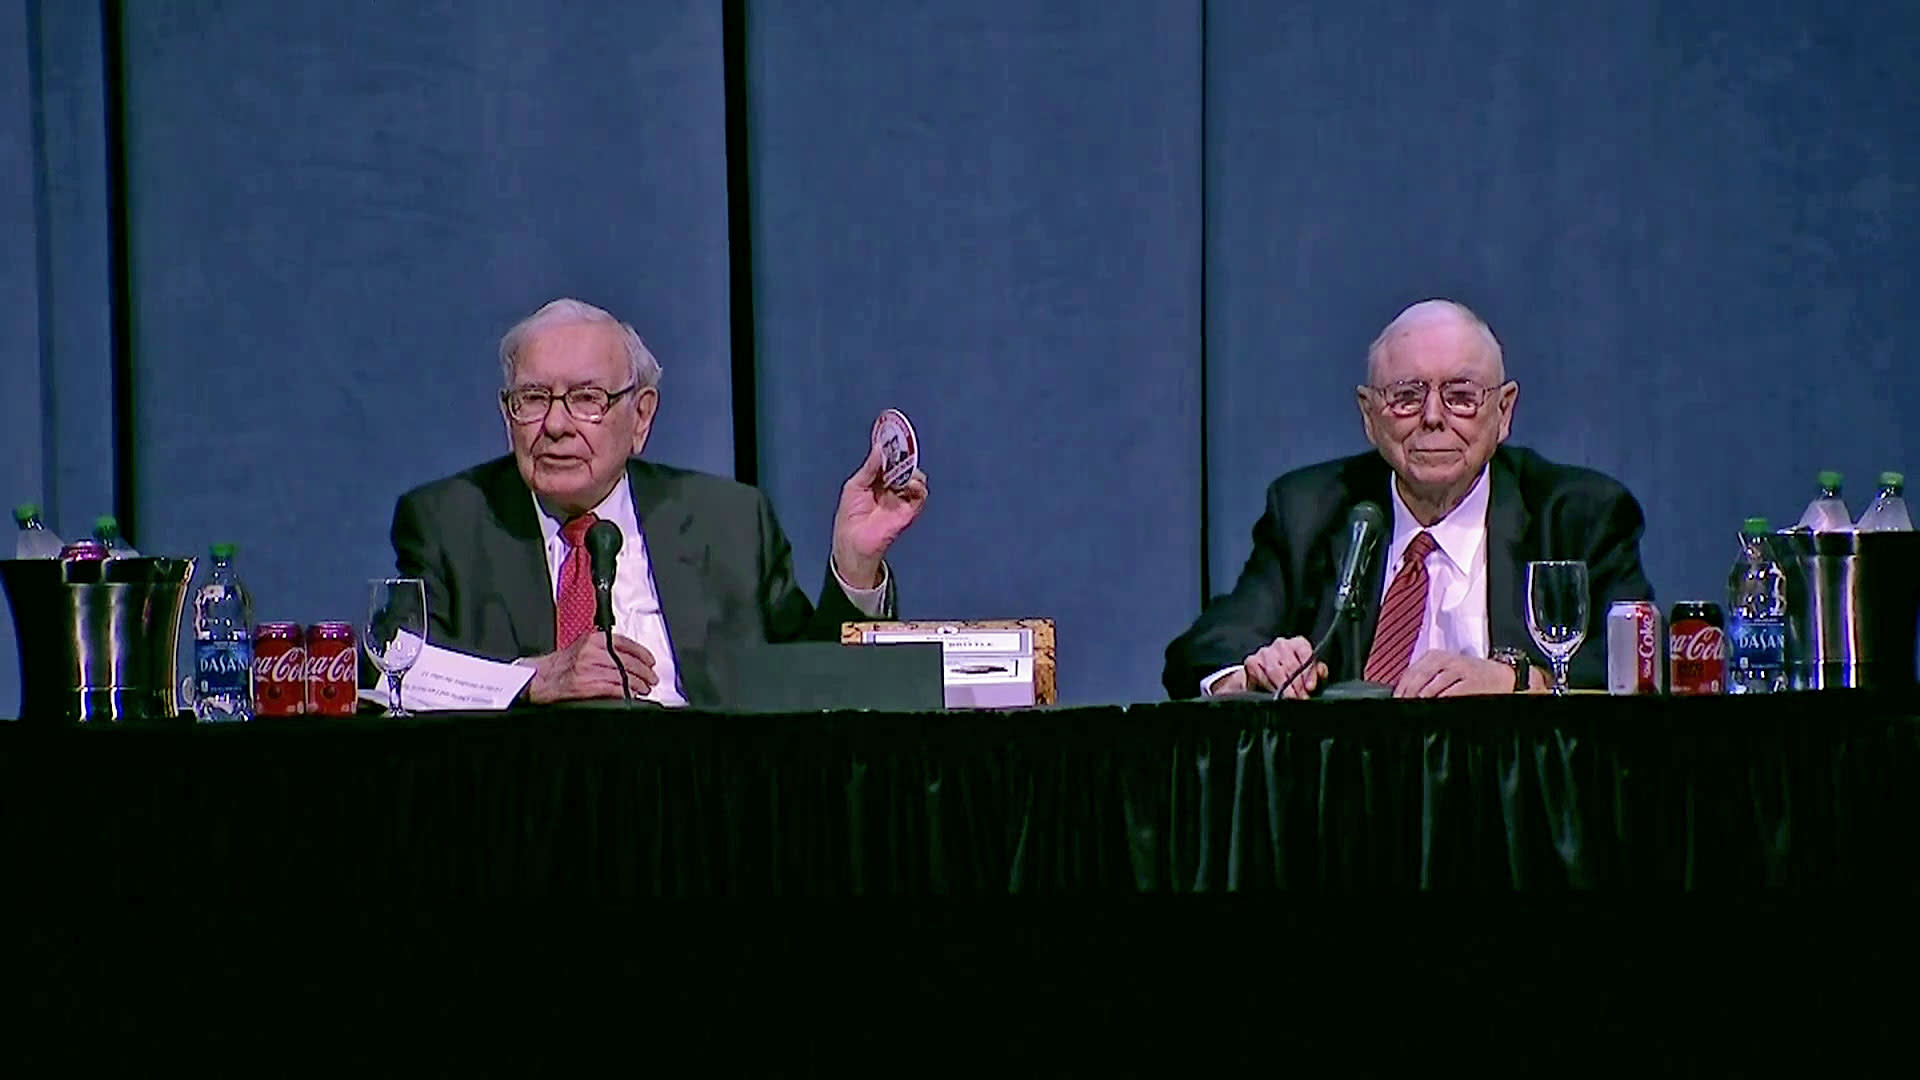 Morning Session - 2019 Berkshire Hathaway Annual Meeting